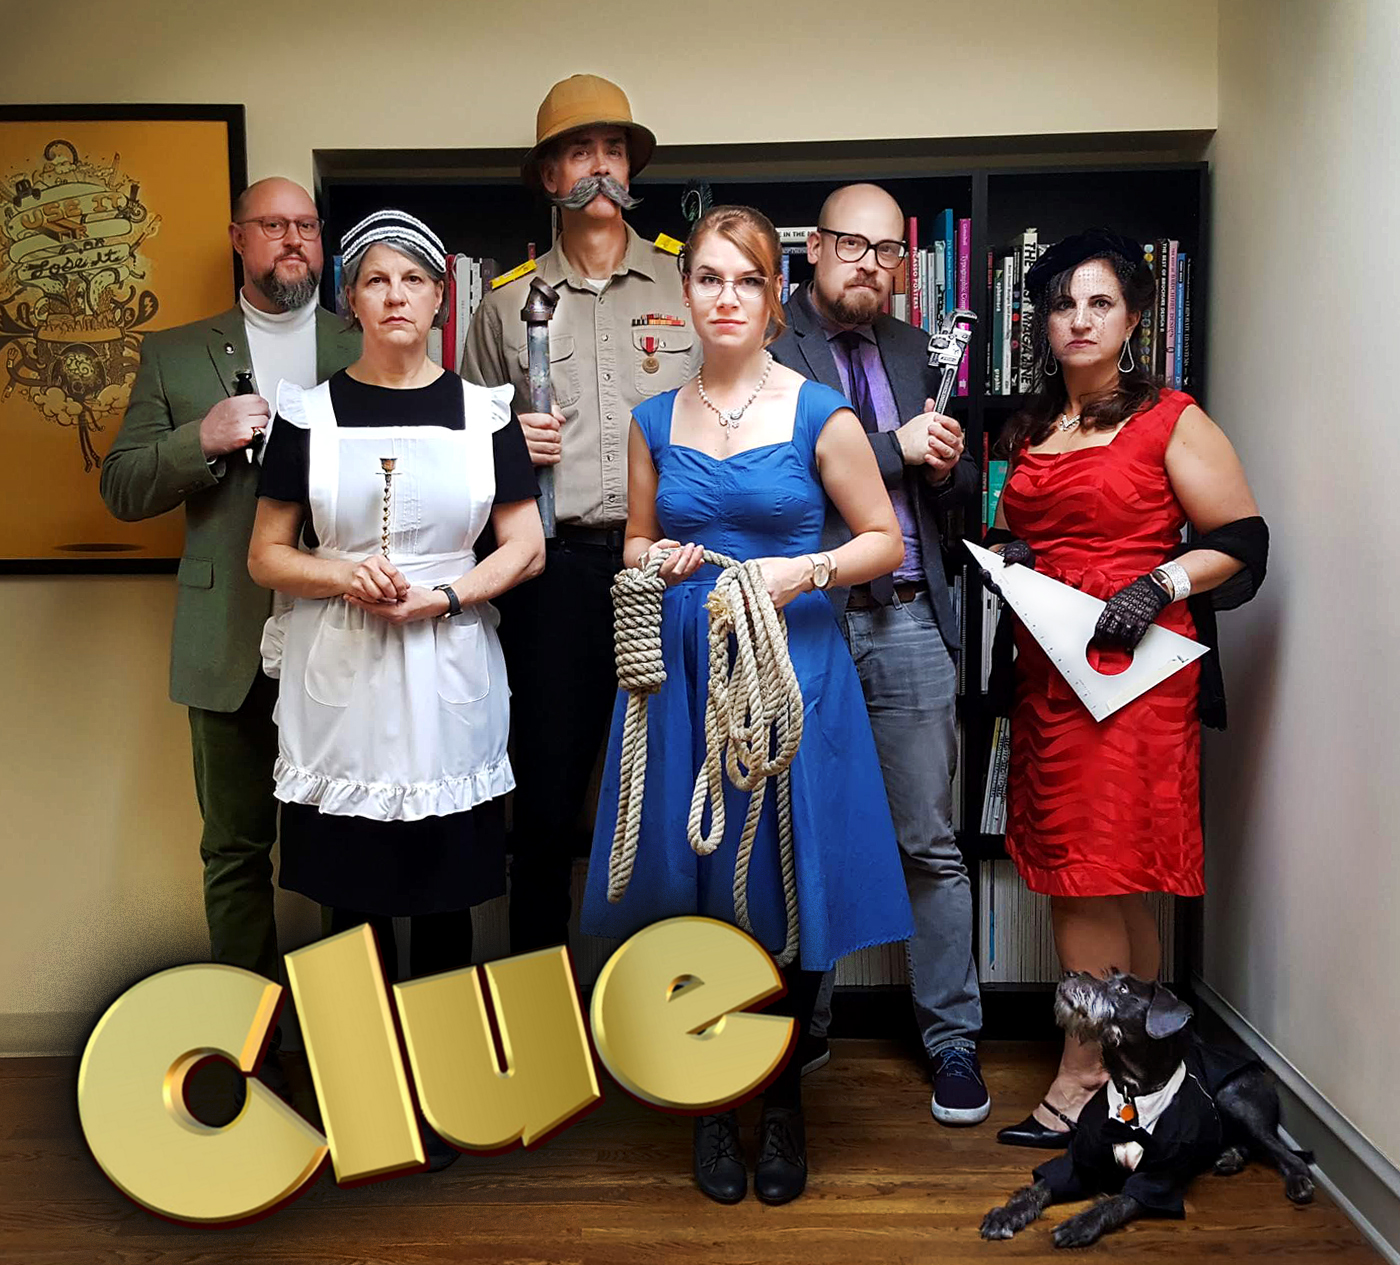 NeigerDesign Clue group costume, a design agency Halloween